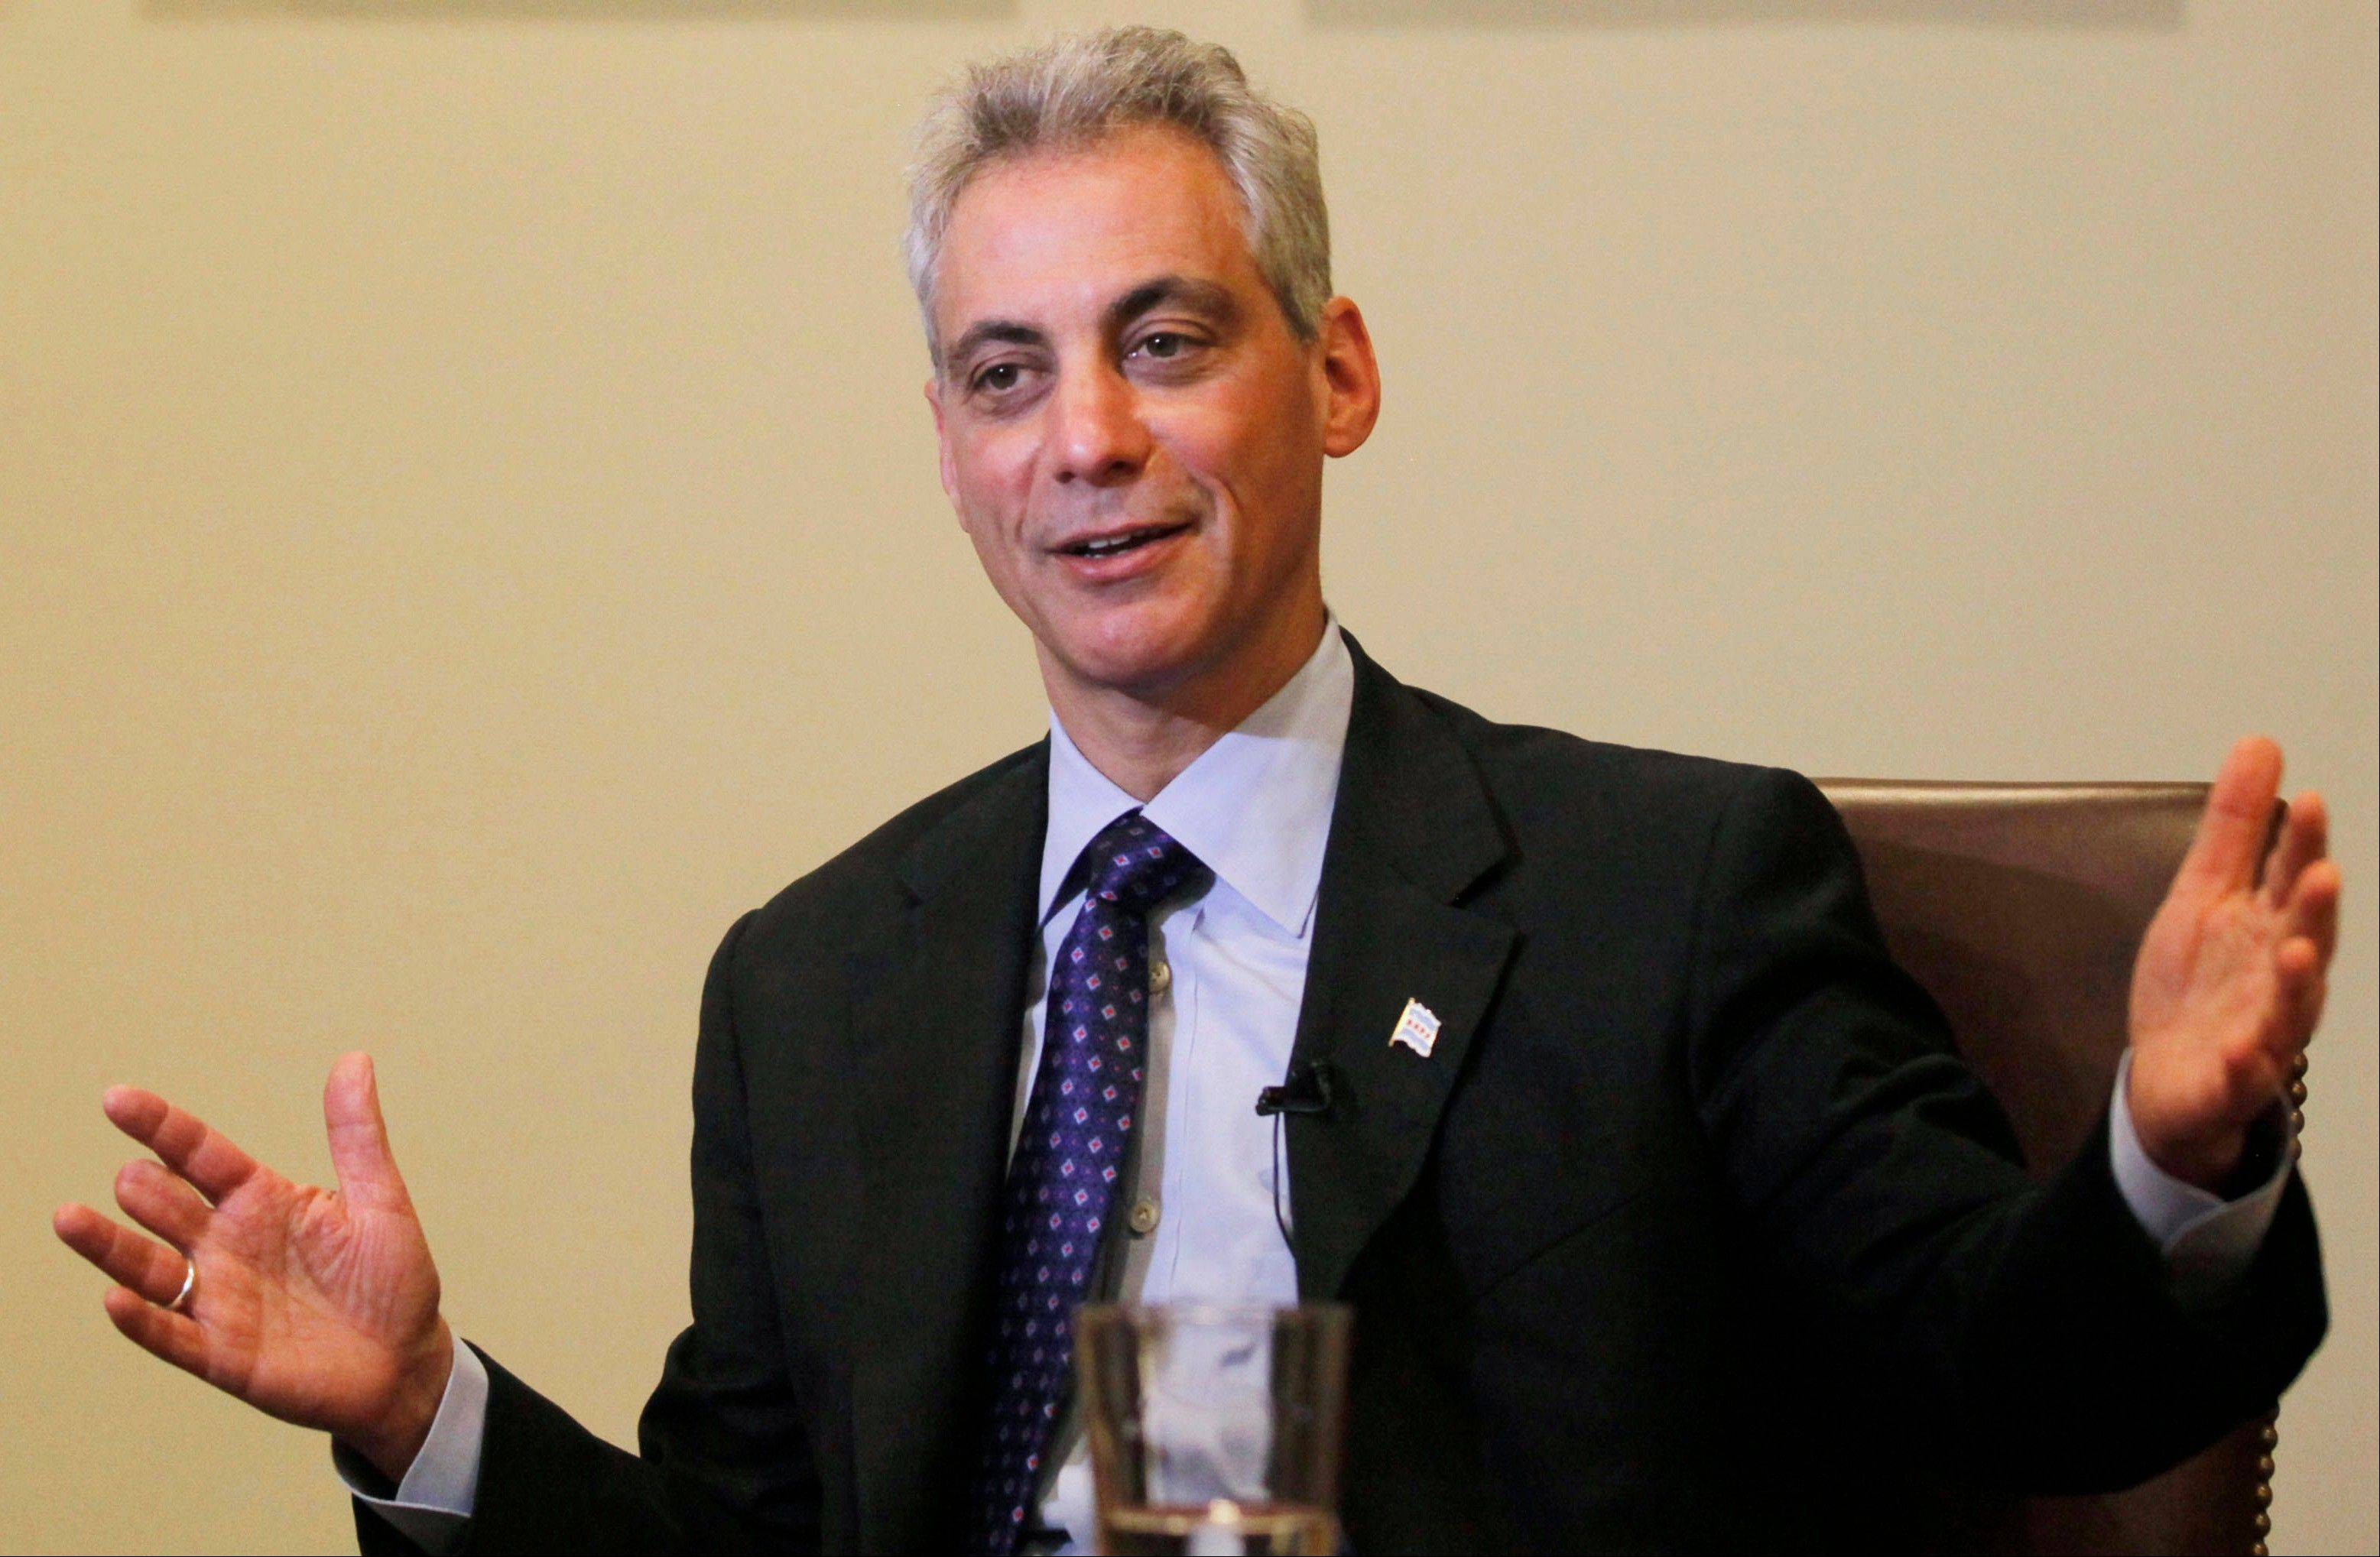 Chicago Mayor Rahm Emanuel says he will join two aldermen in introducing an ordinance that will allow food truck operators to prepare meals aboard their vehicles.